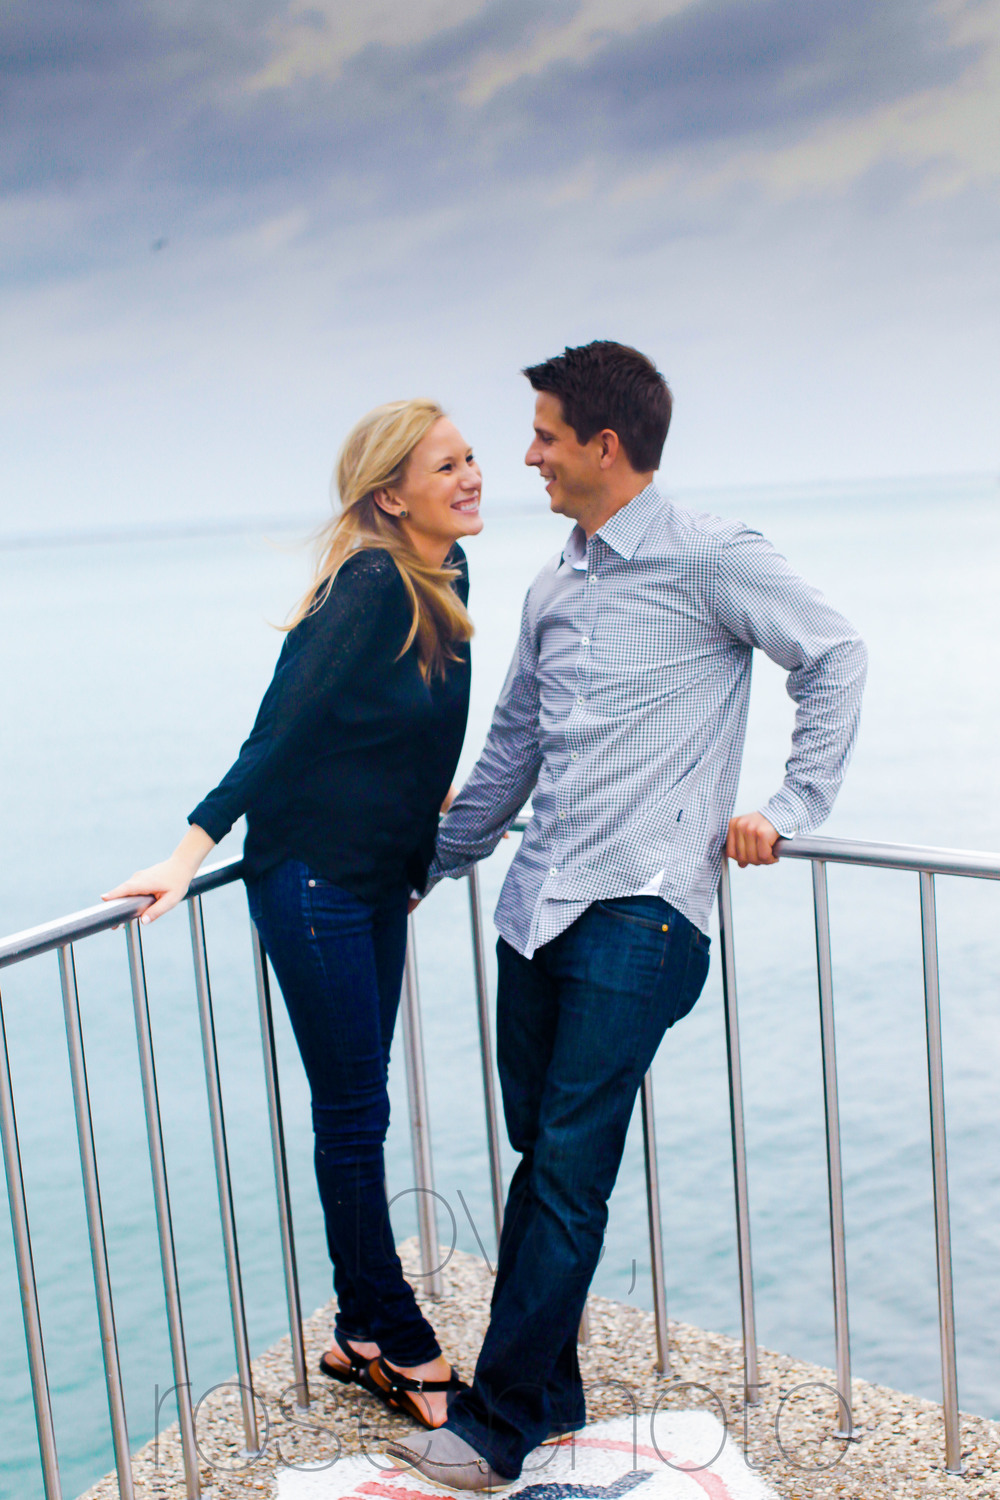 chicago yacht club lake front engagement shoot olive park chicago theater wedding photographer rose photo-008.jpg